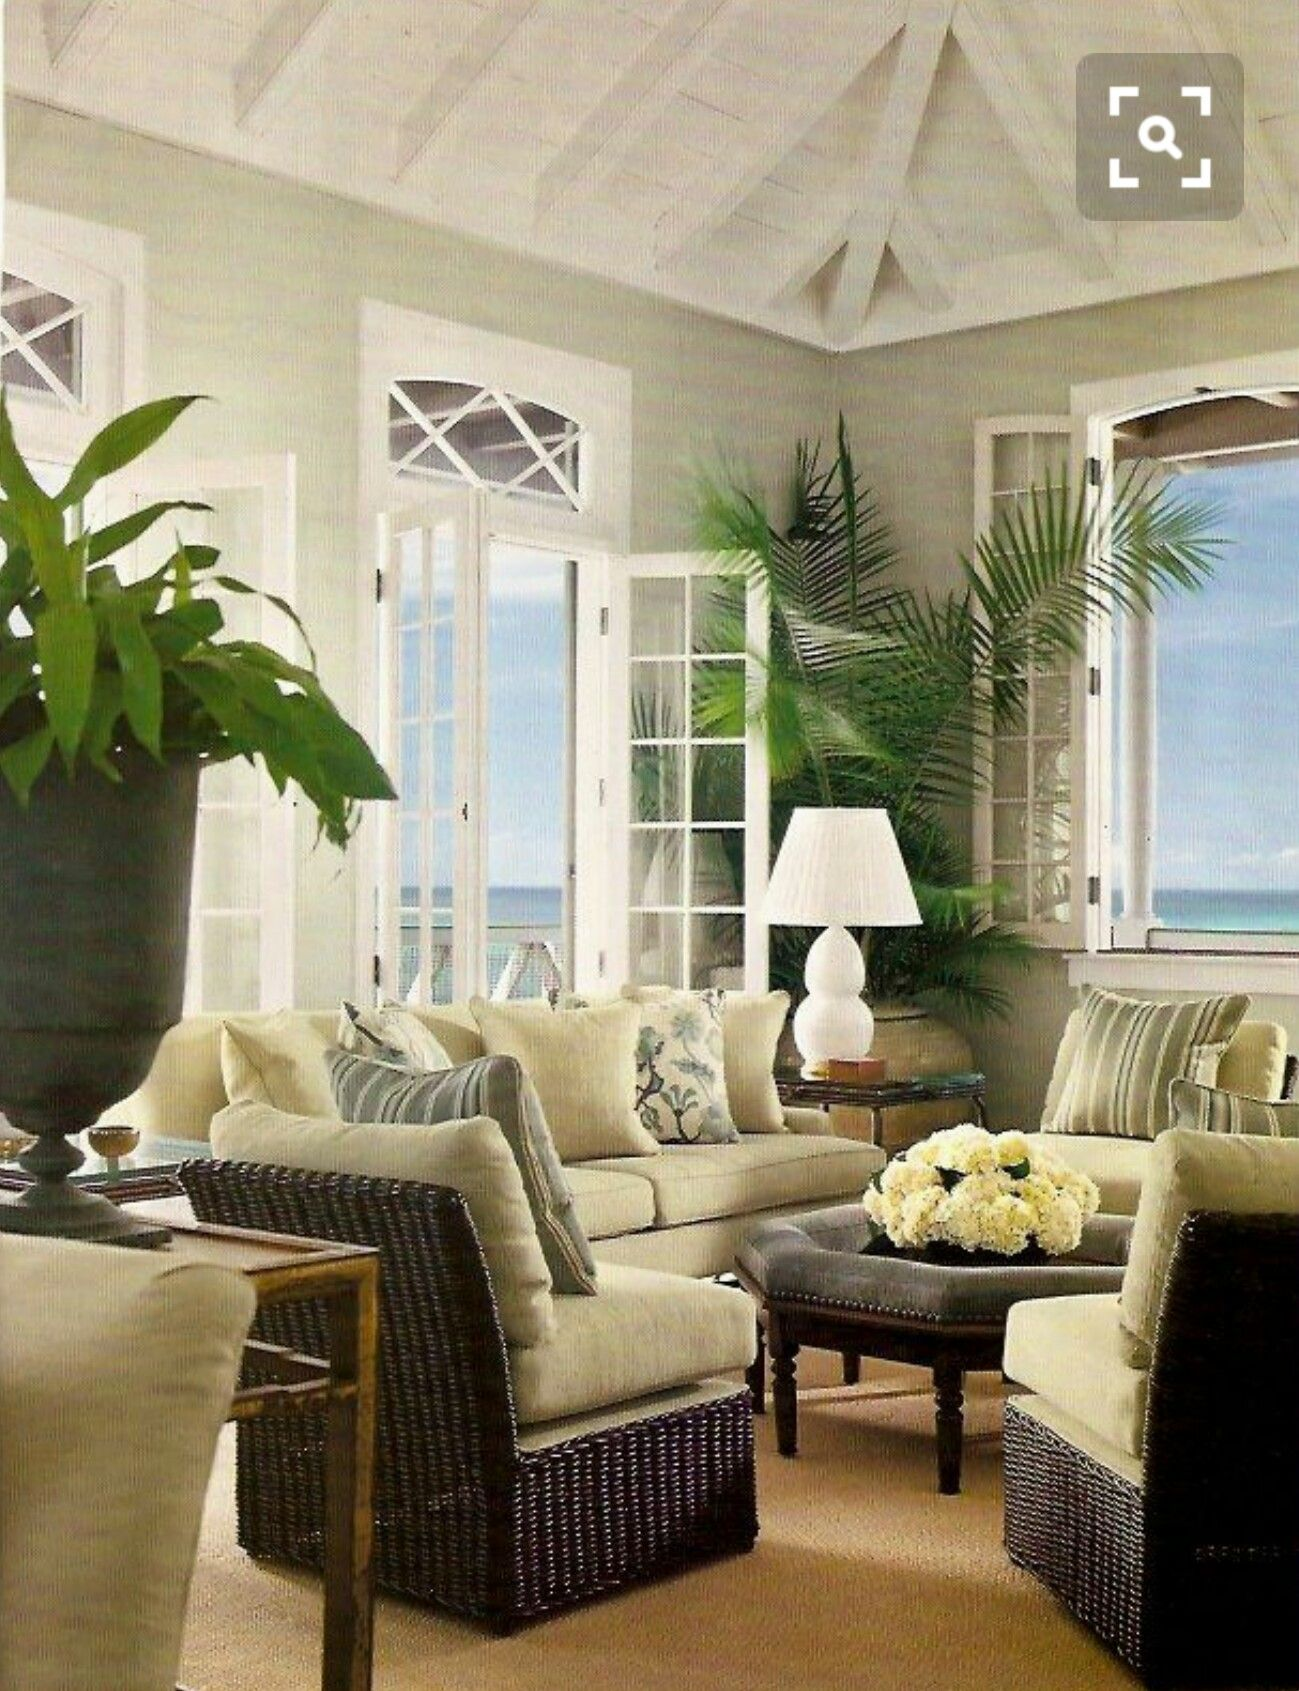 pin by julene finnigan on new house pinterest tropical beaches british colonial and colonial. Black Bedroom Furniture Sets. Home Design Ideas